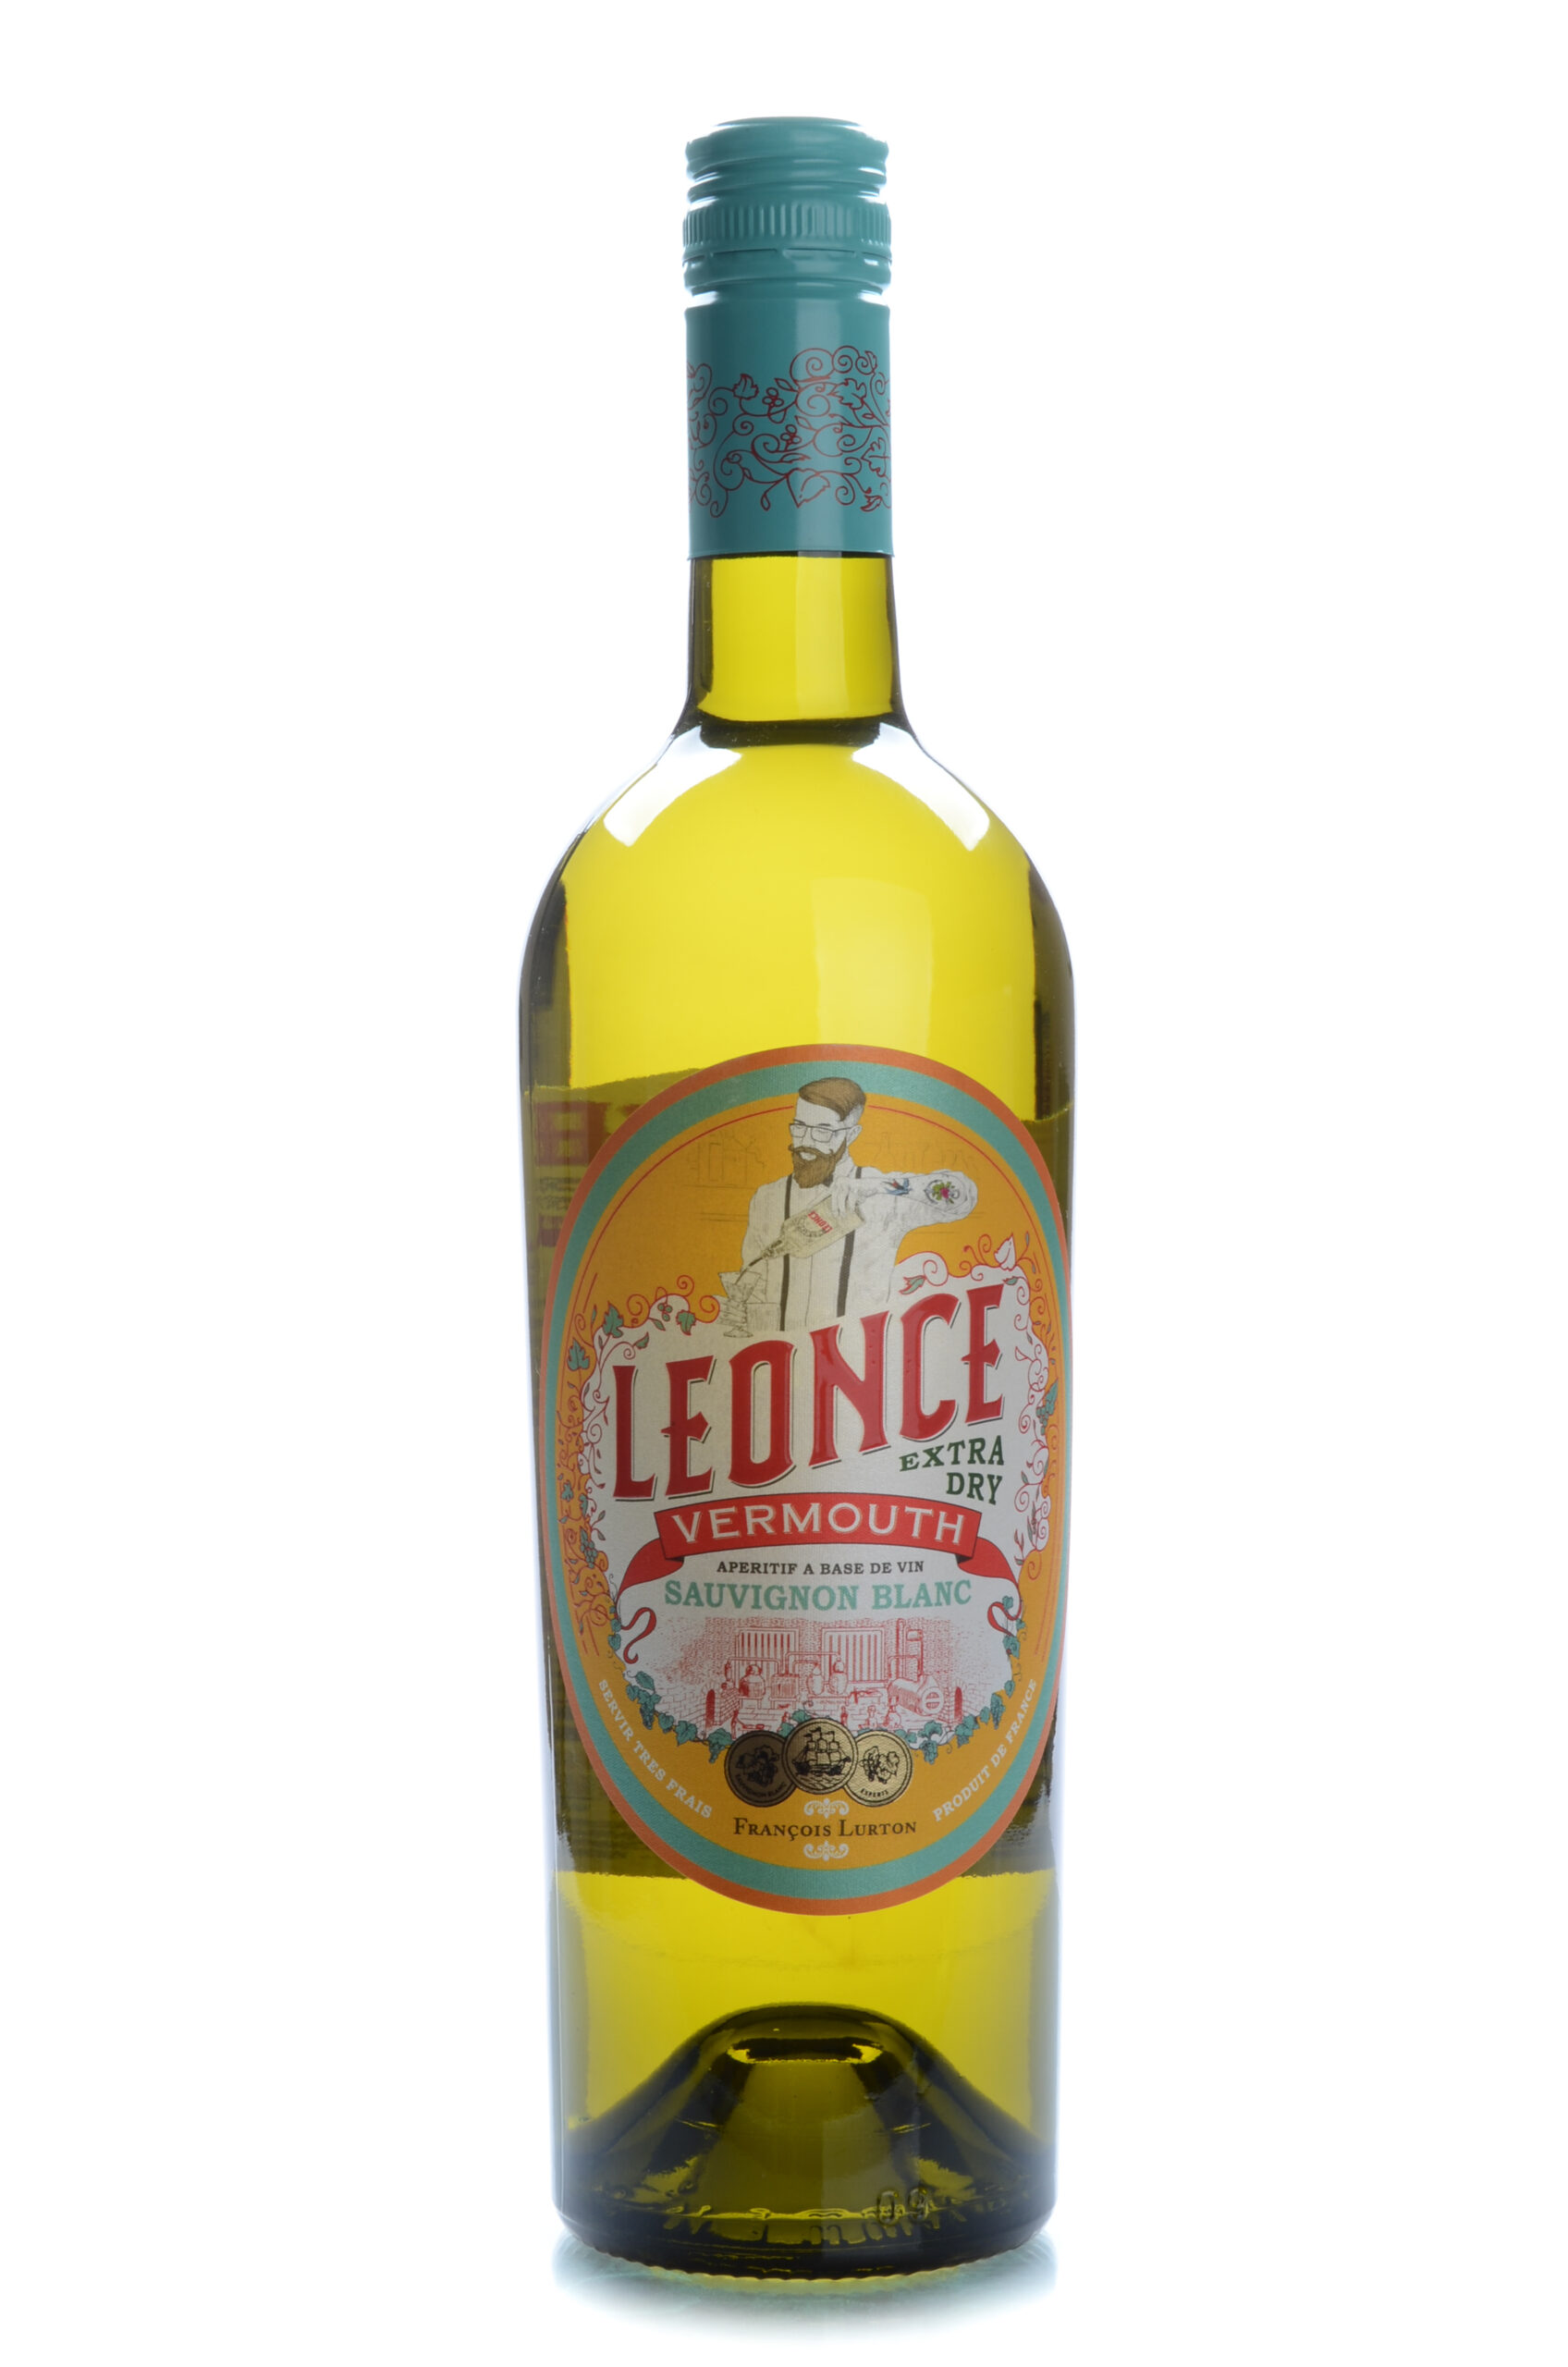 Leonce vermouth extra dry sauvignon blanc wit